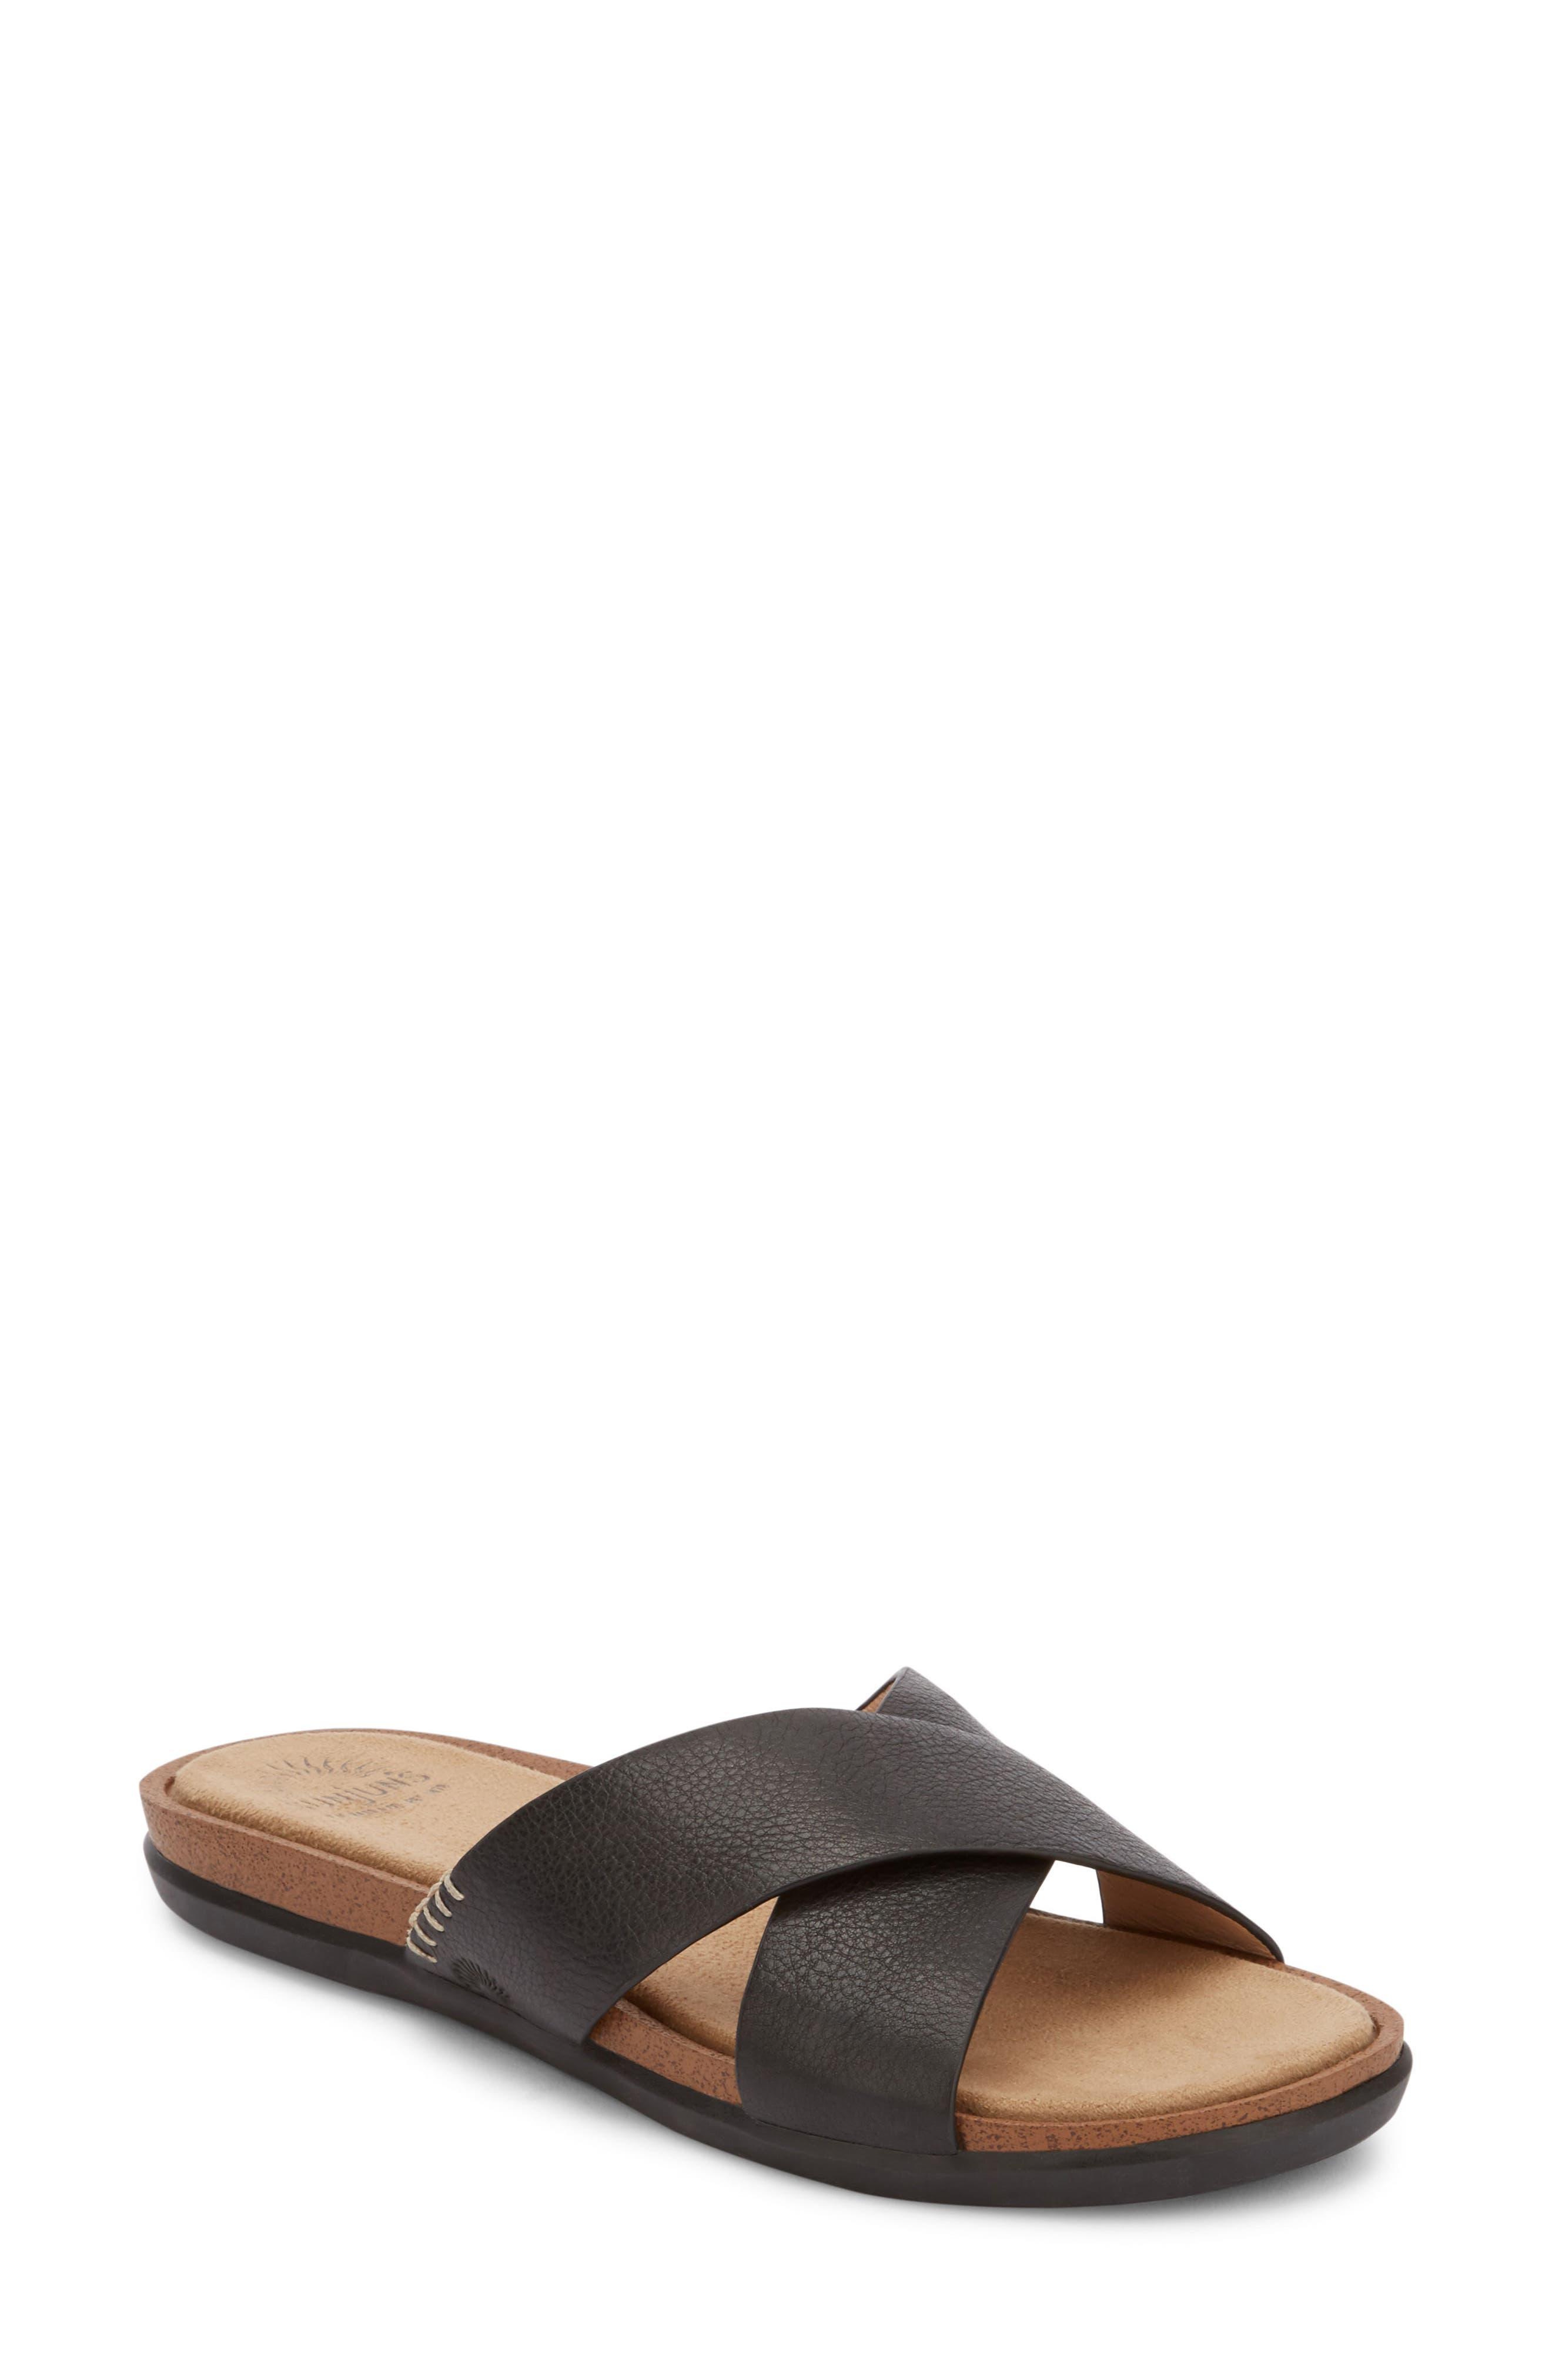 Stella Slide Sandal,                             Main thumbnail 1, color,                             BLACK LEATHER